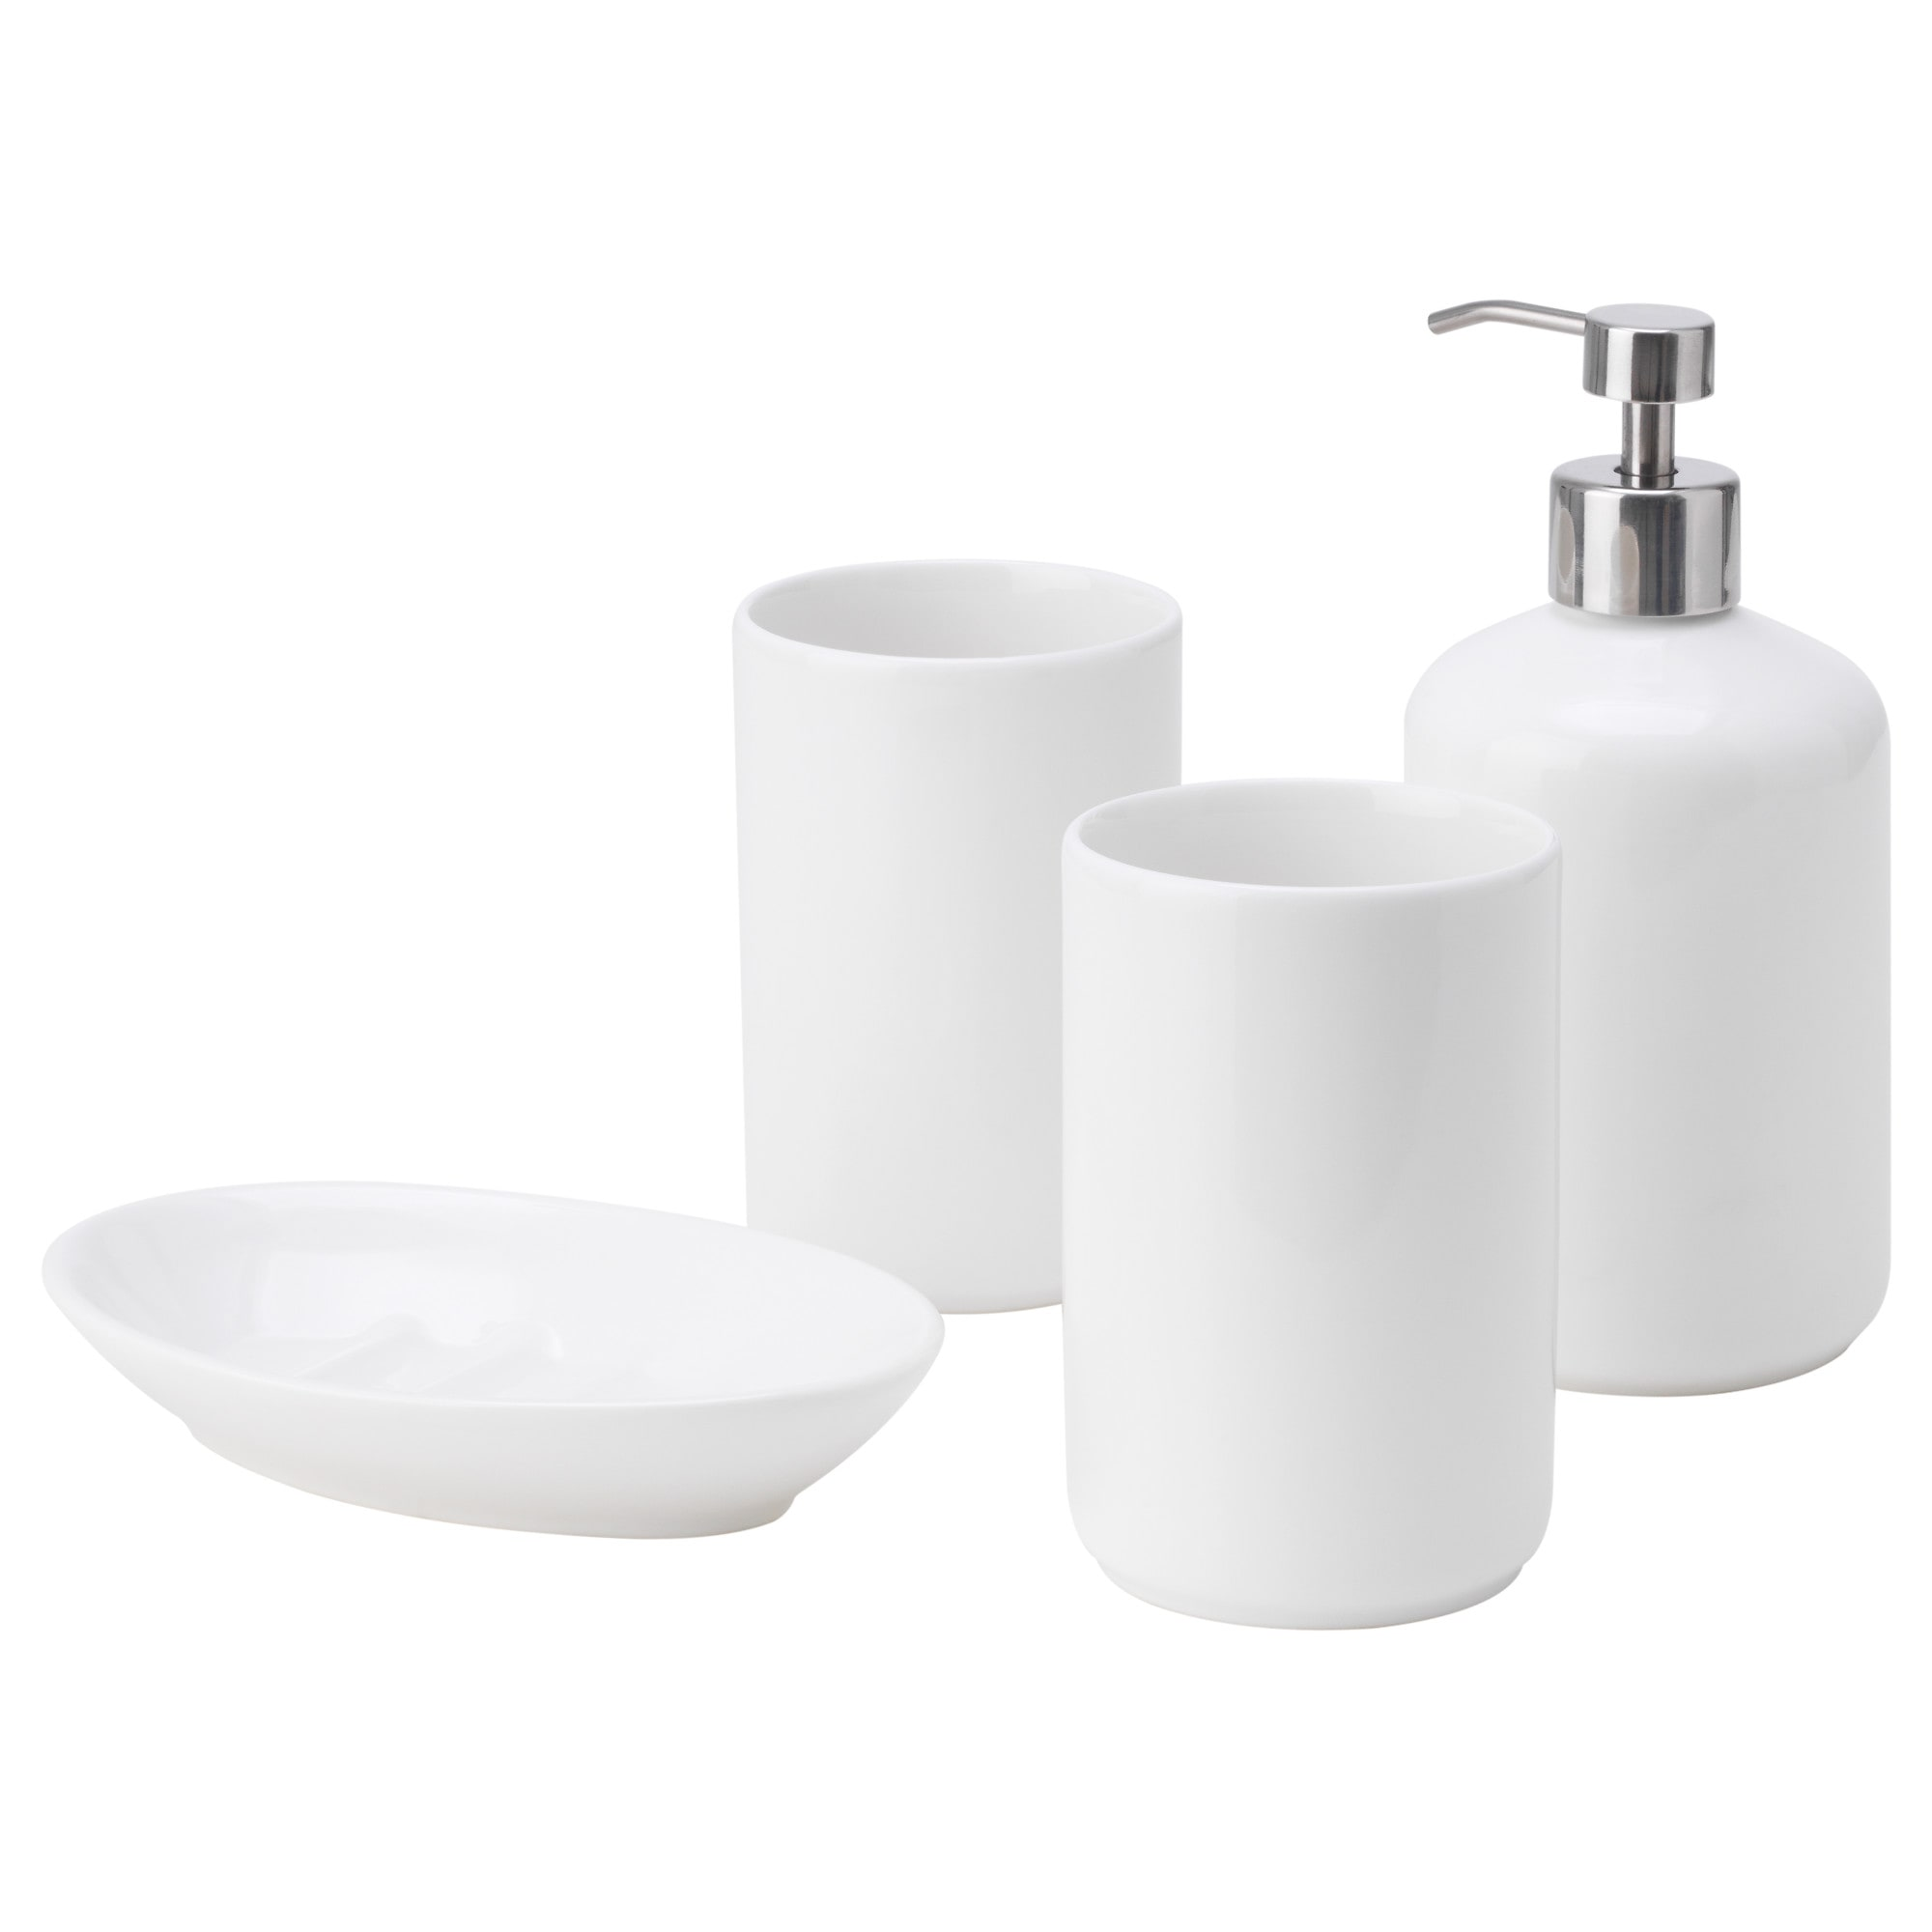 boasj 4 piece bathroom set - Bathroom Accessories Miami